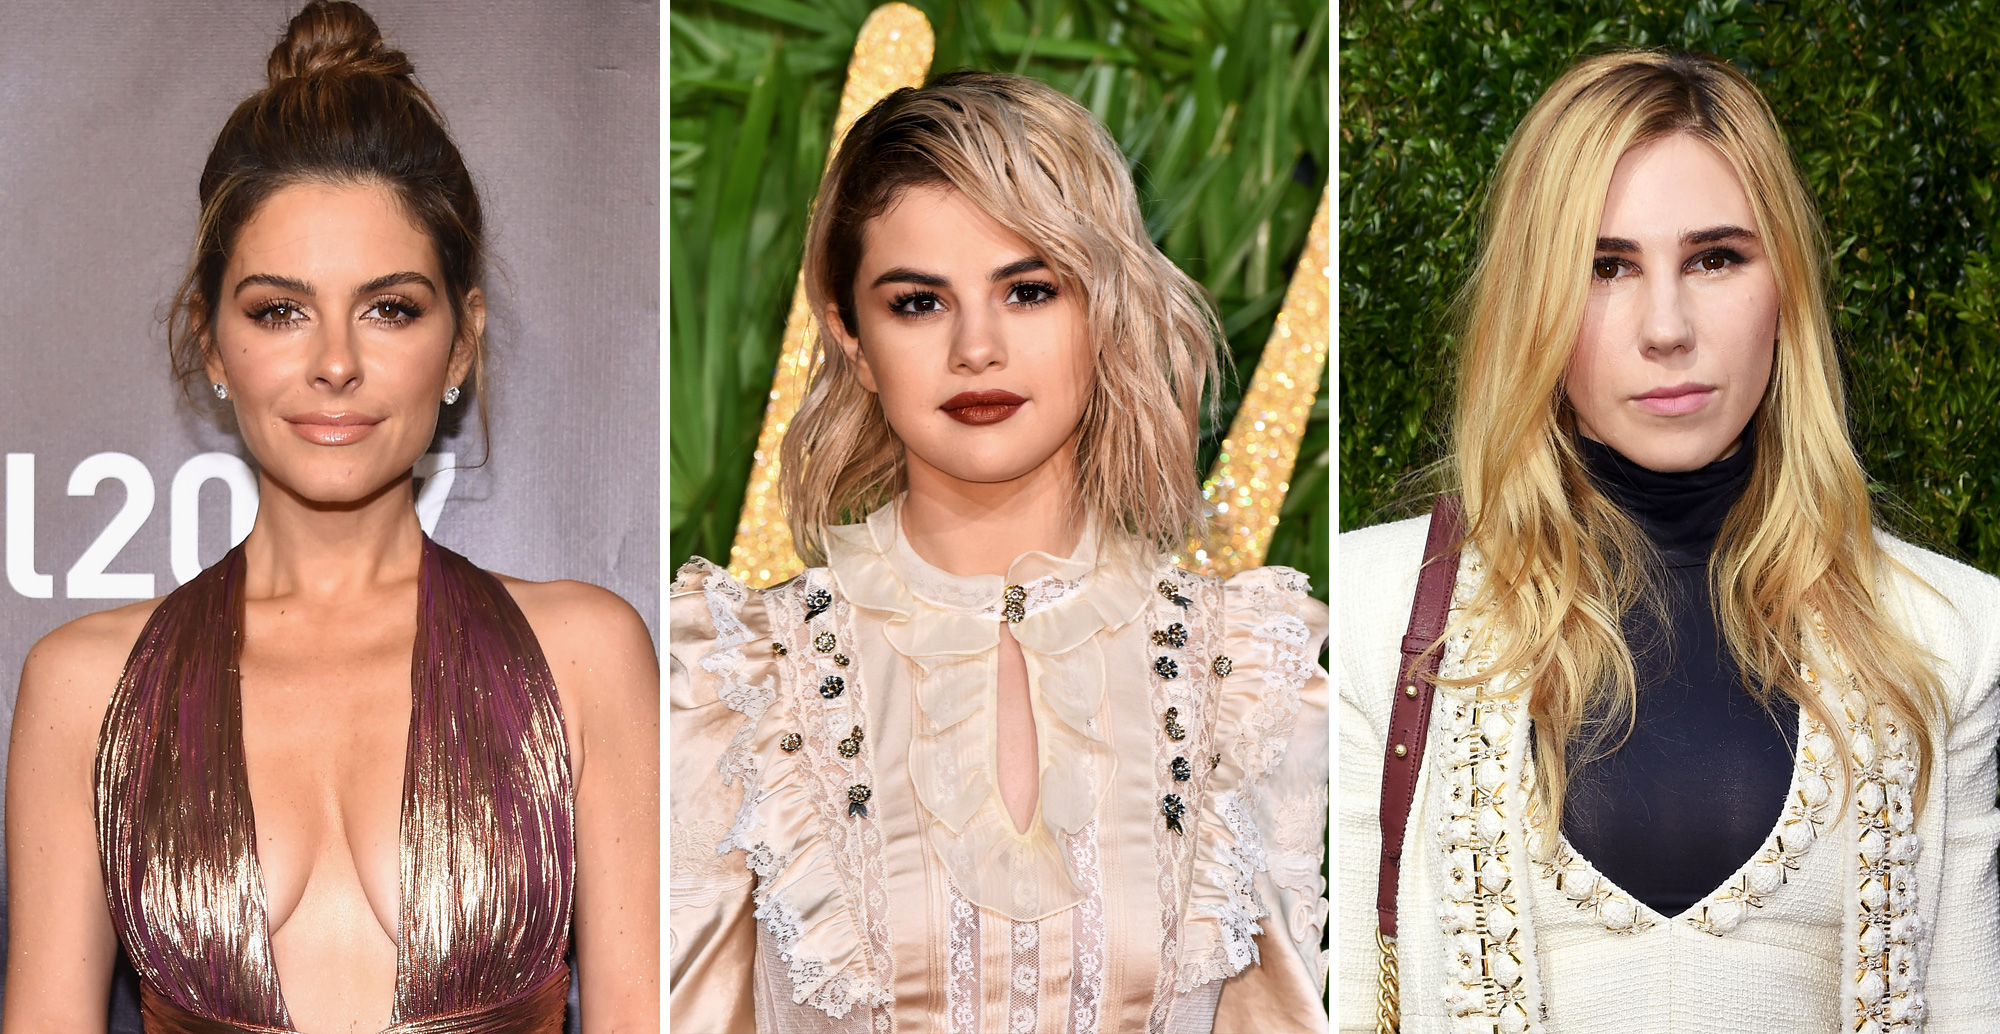 Celebs Who Revealed Health Issues in 2017 Lead